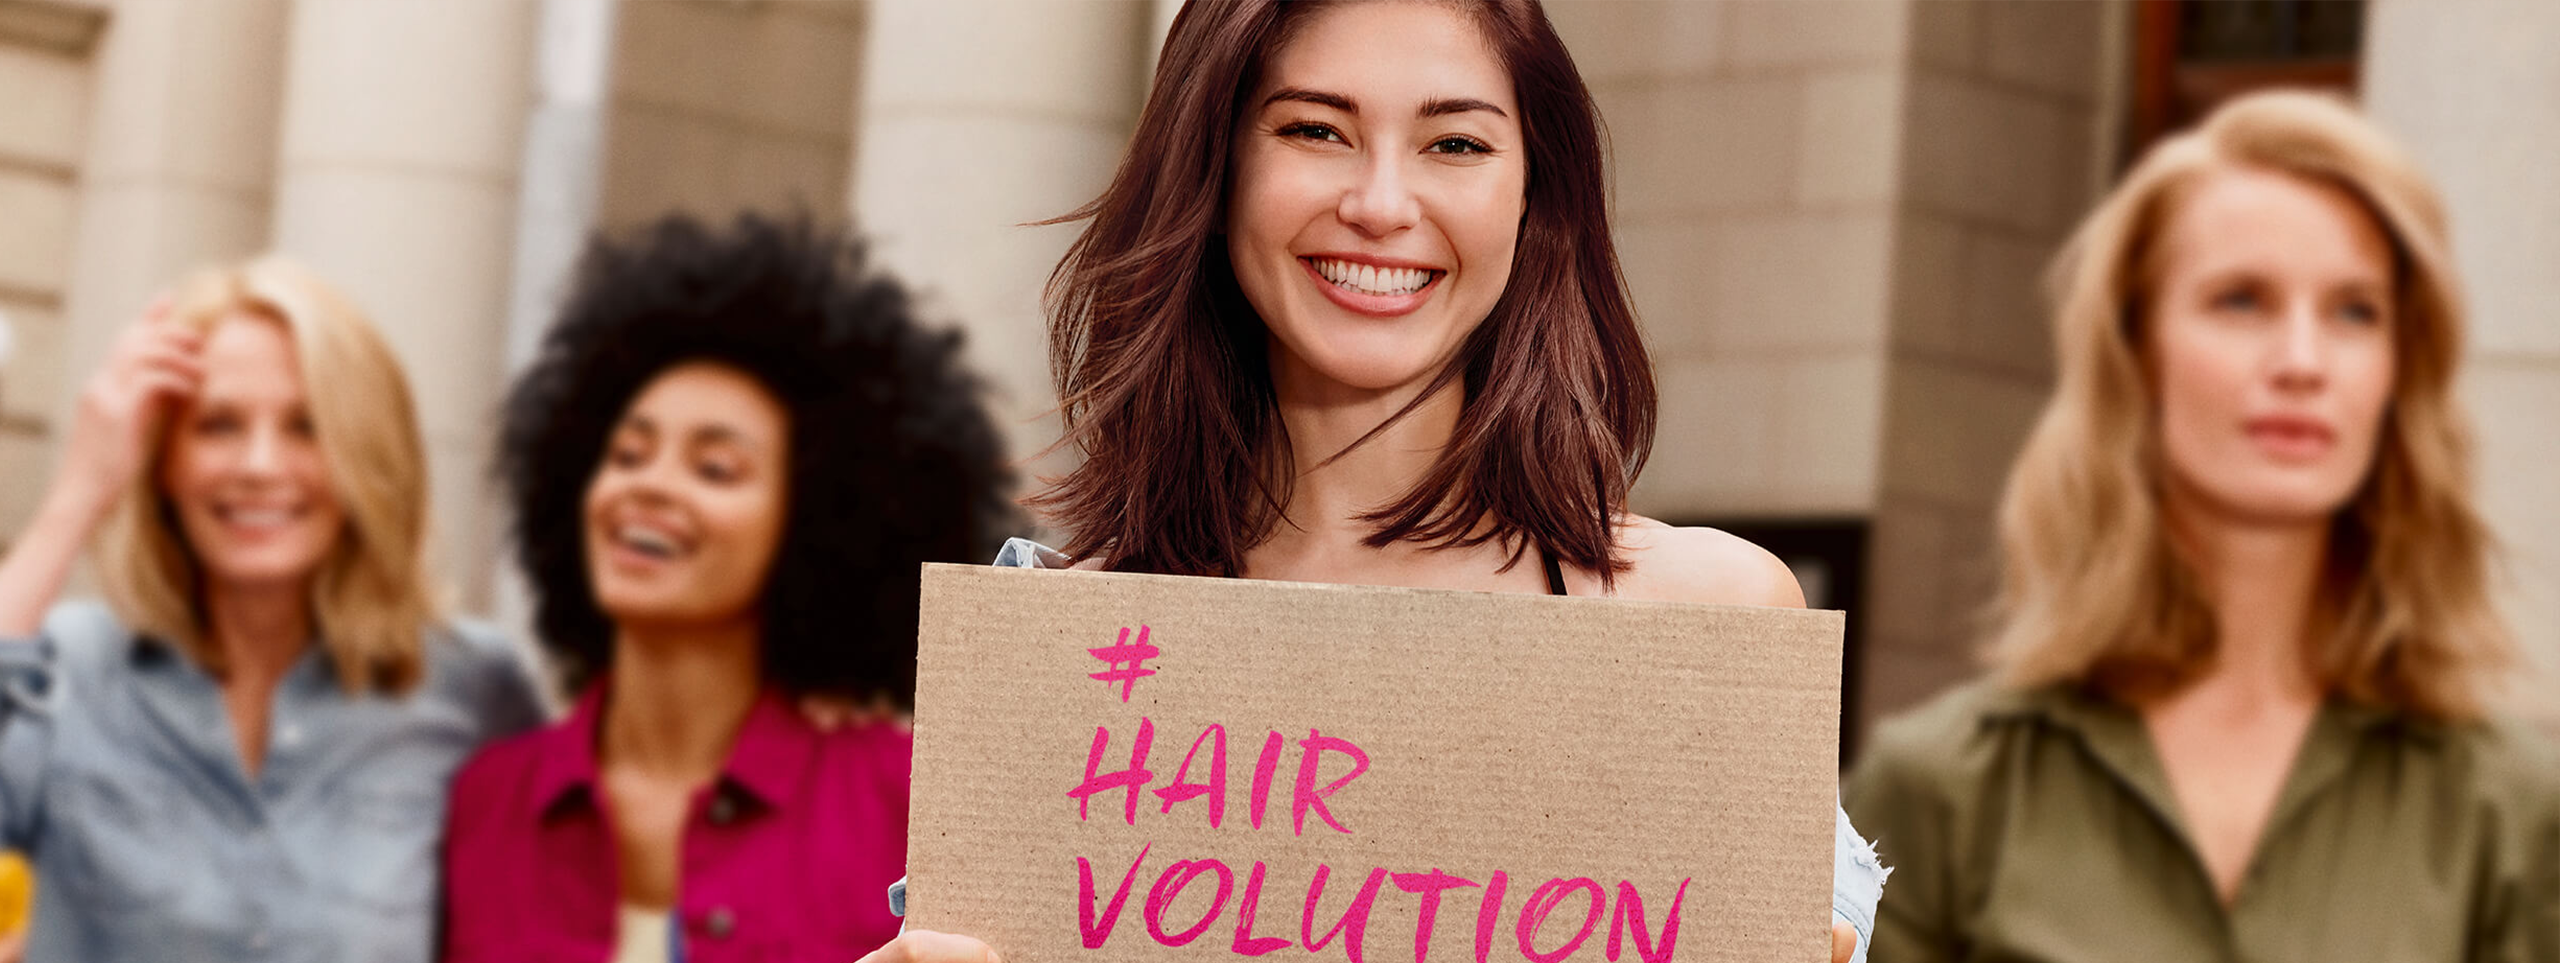 DK-Only-love-hair-volution-brunette-2560x963px.png